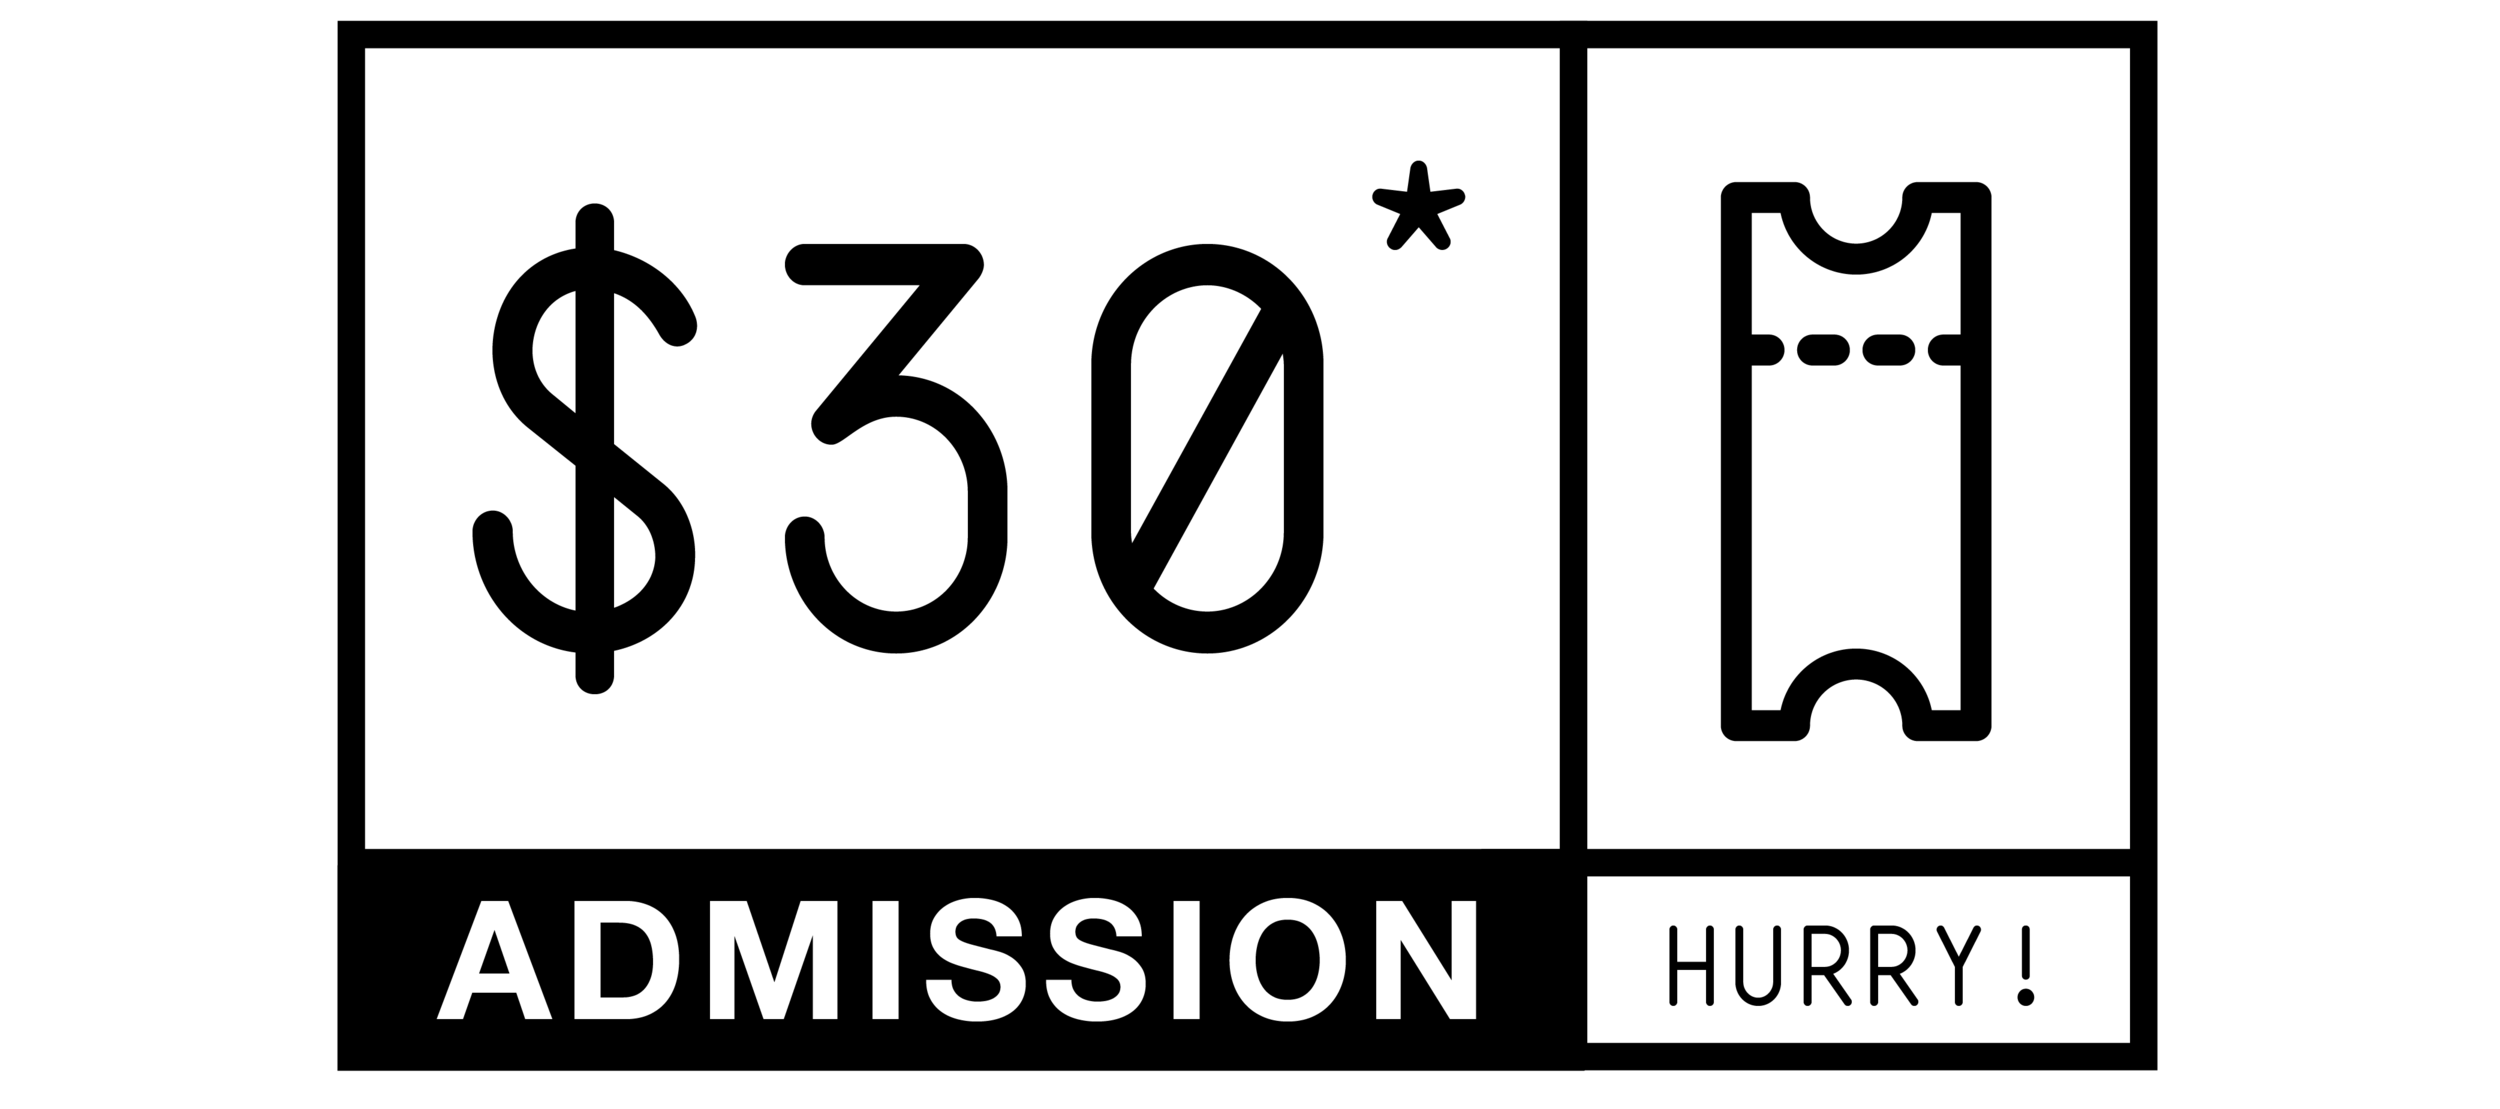 admission_ticket.png